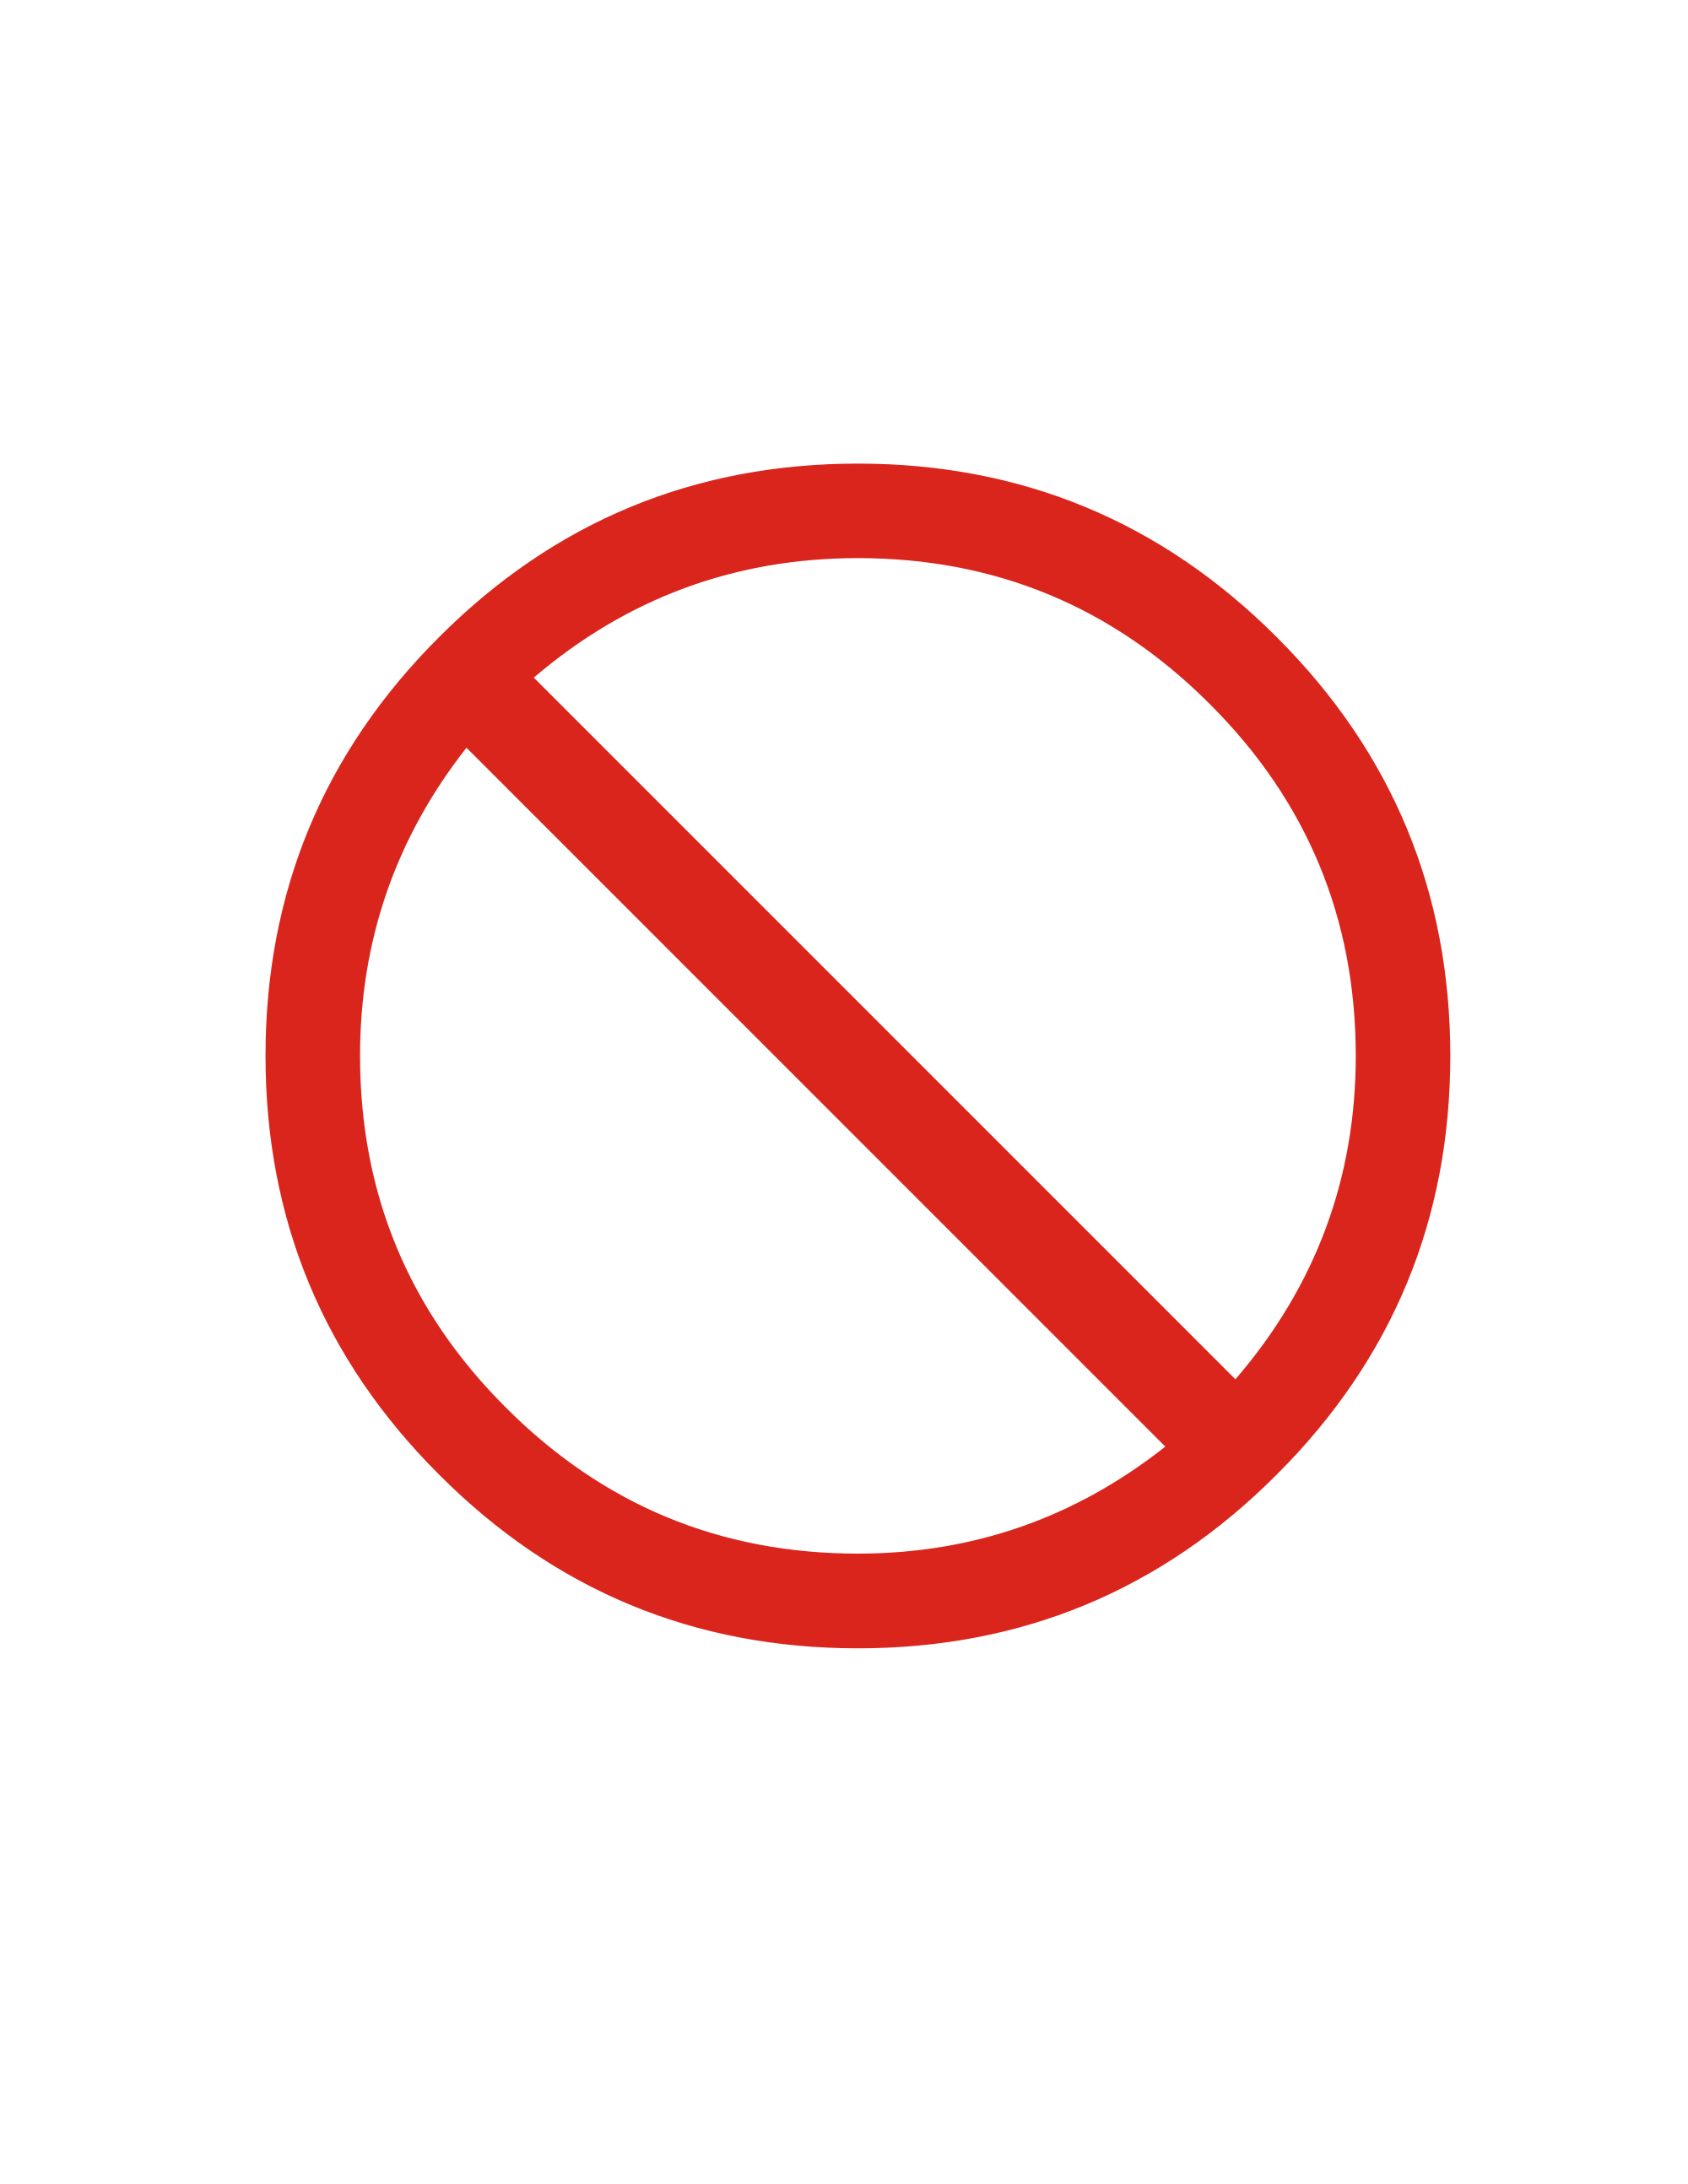 Not Allowed Sign Clipart - Clipart Suggest